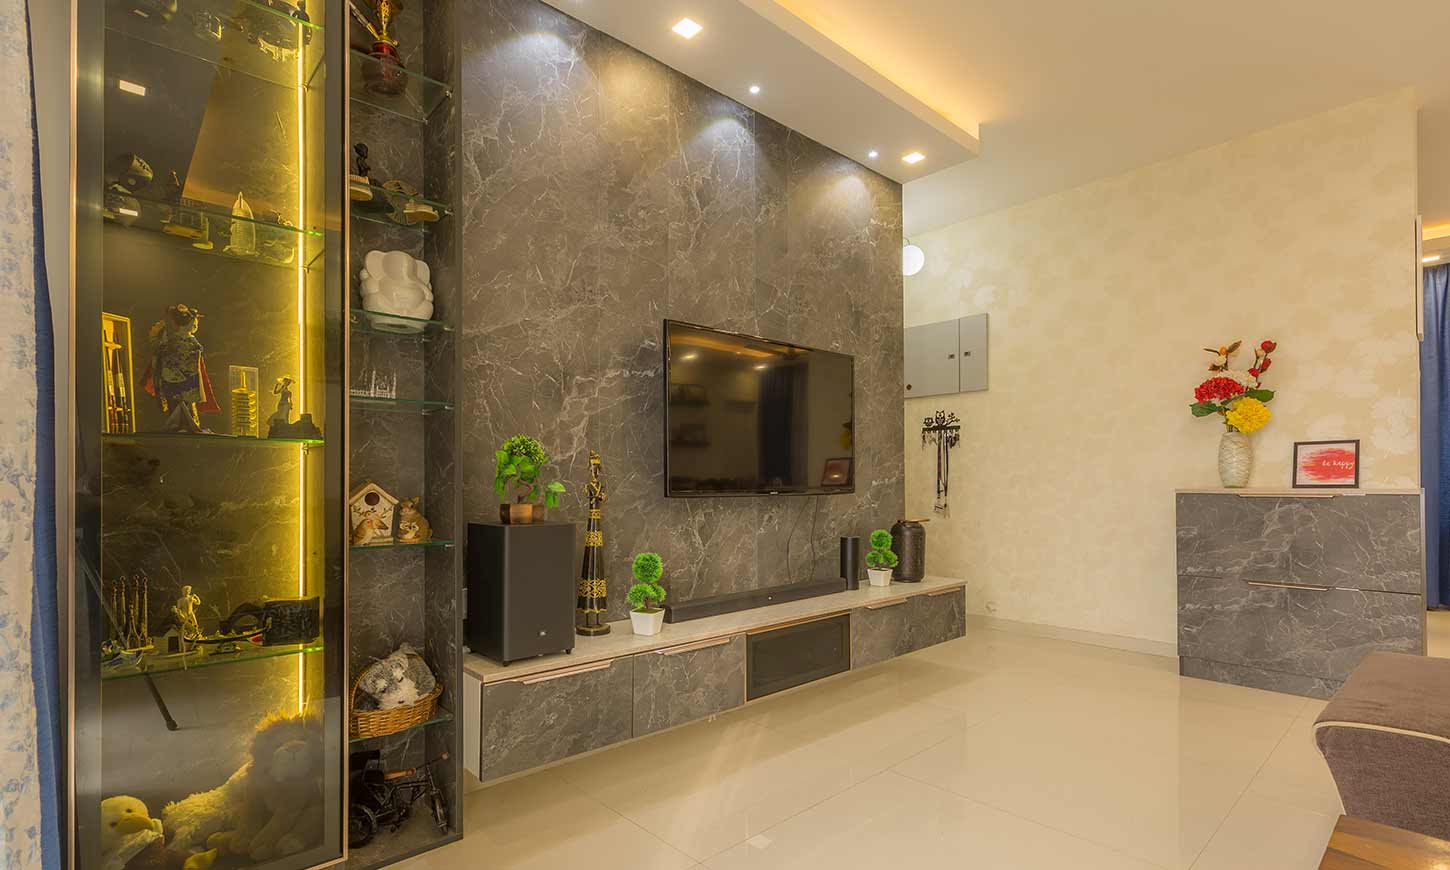 Wardrobe designers in bangalore designed by home interior designers in bangalore